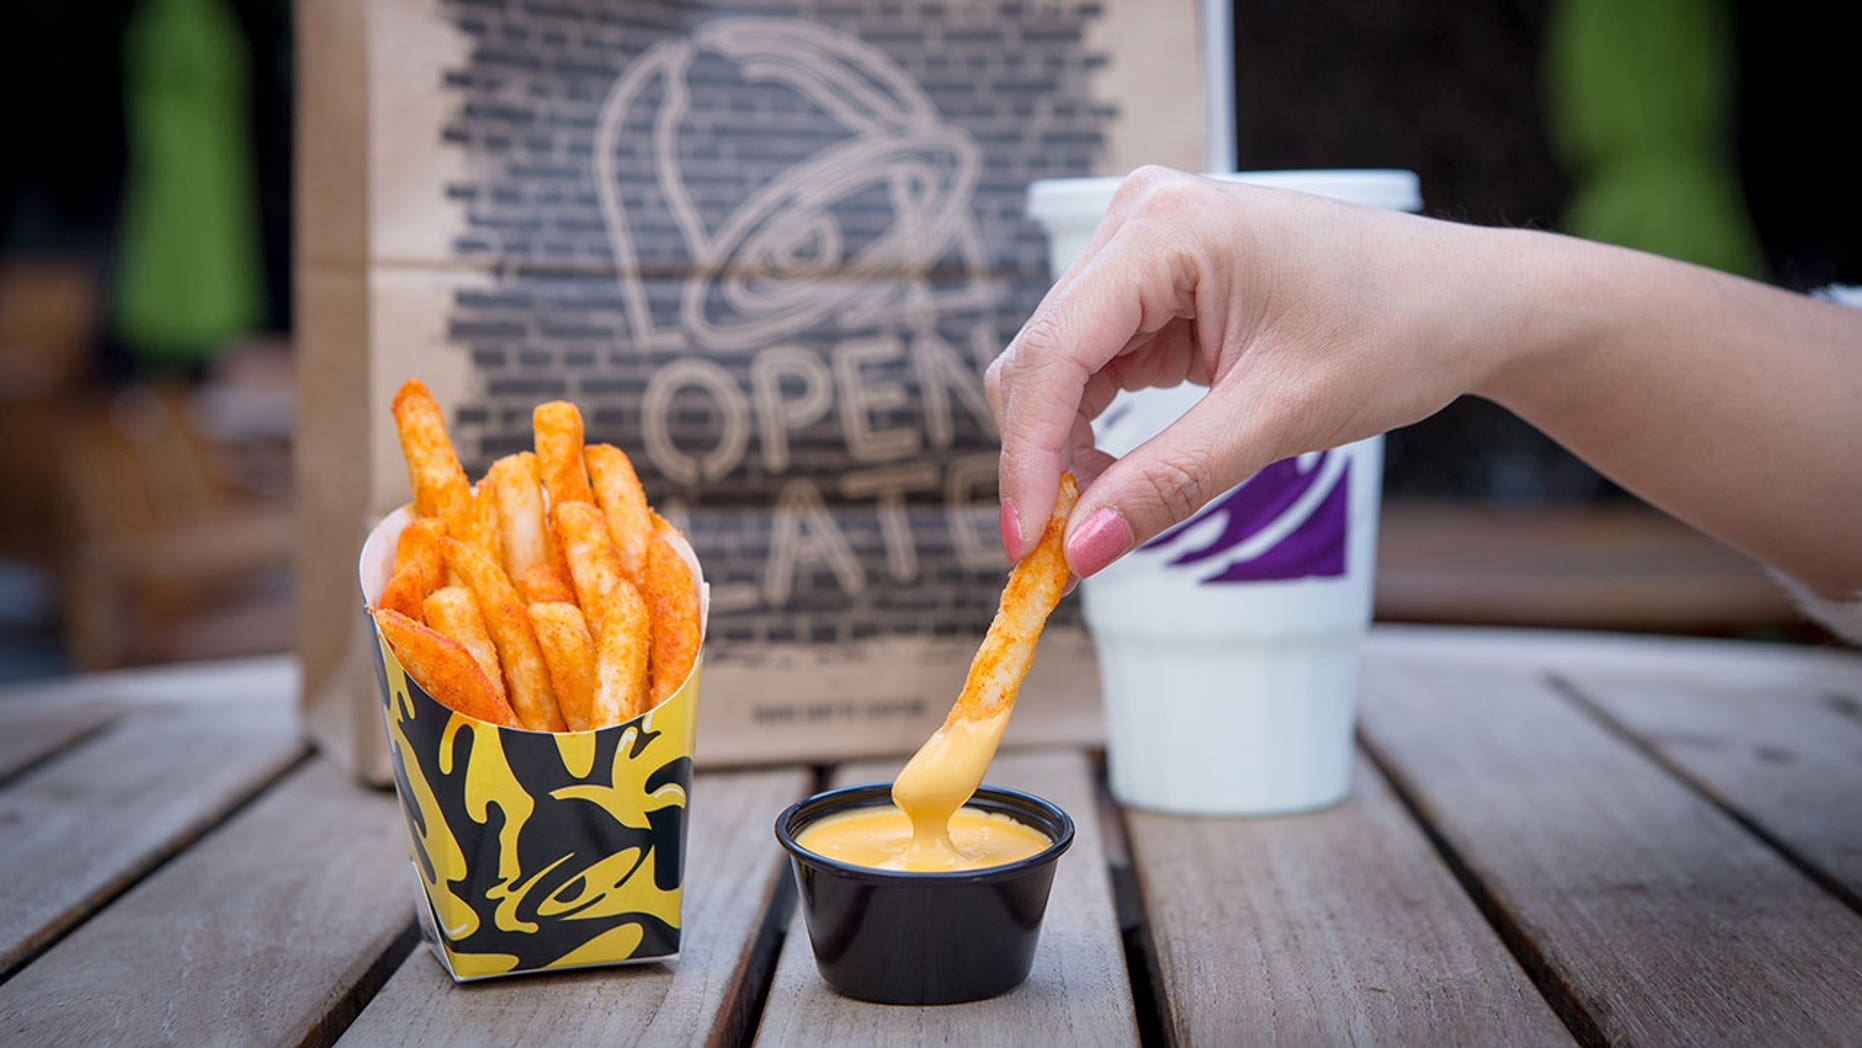 Nacho Fries have dethroned the Doritos Locos Taco, which has previously been the most successful new item.